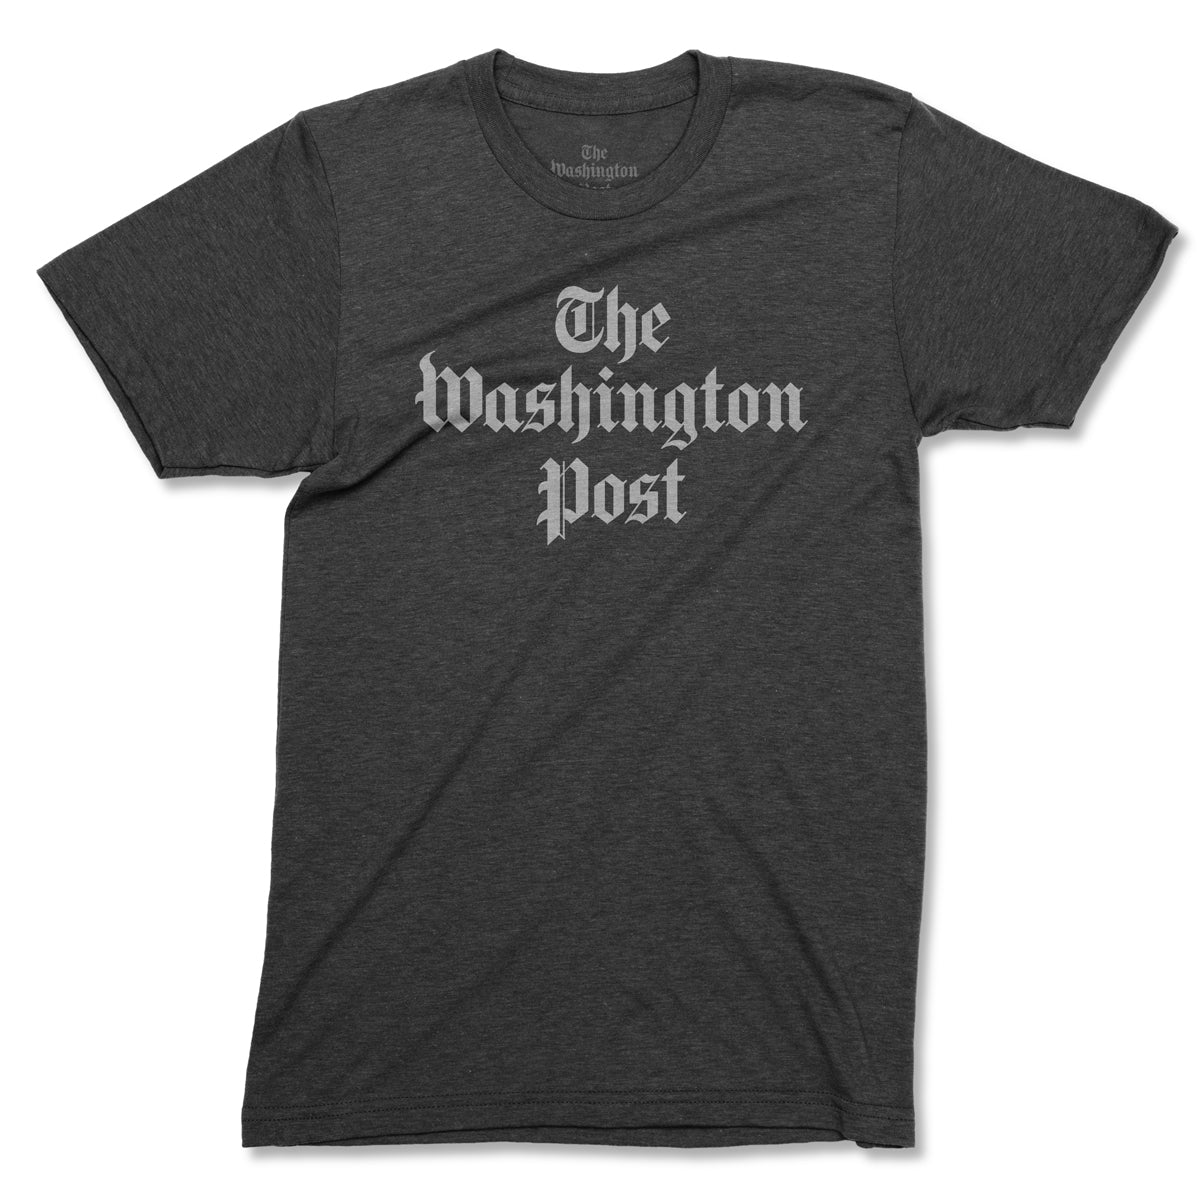 The Washington Post Logo T-shirt in charcoal grey